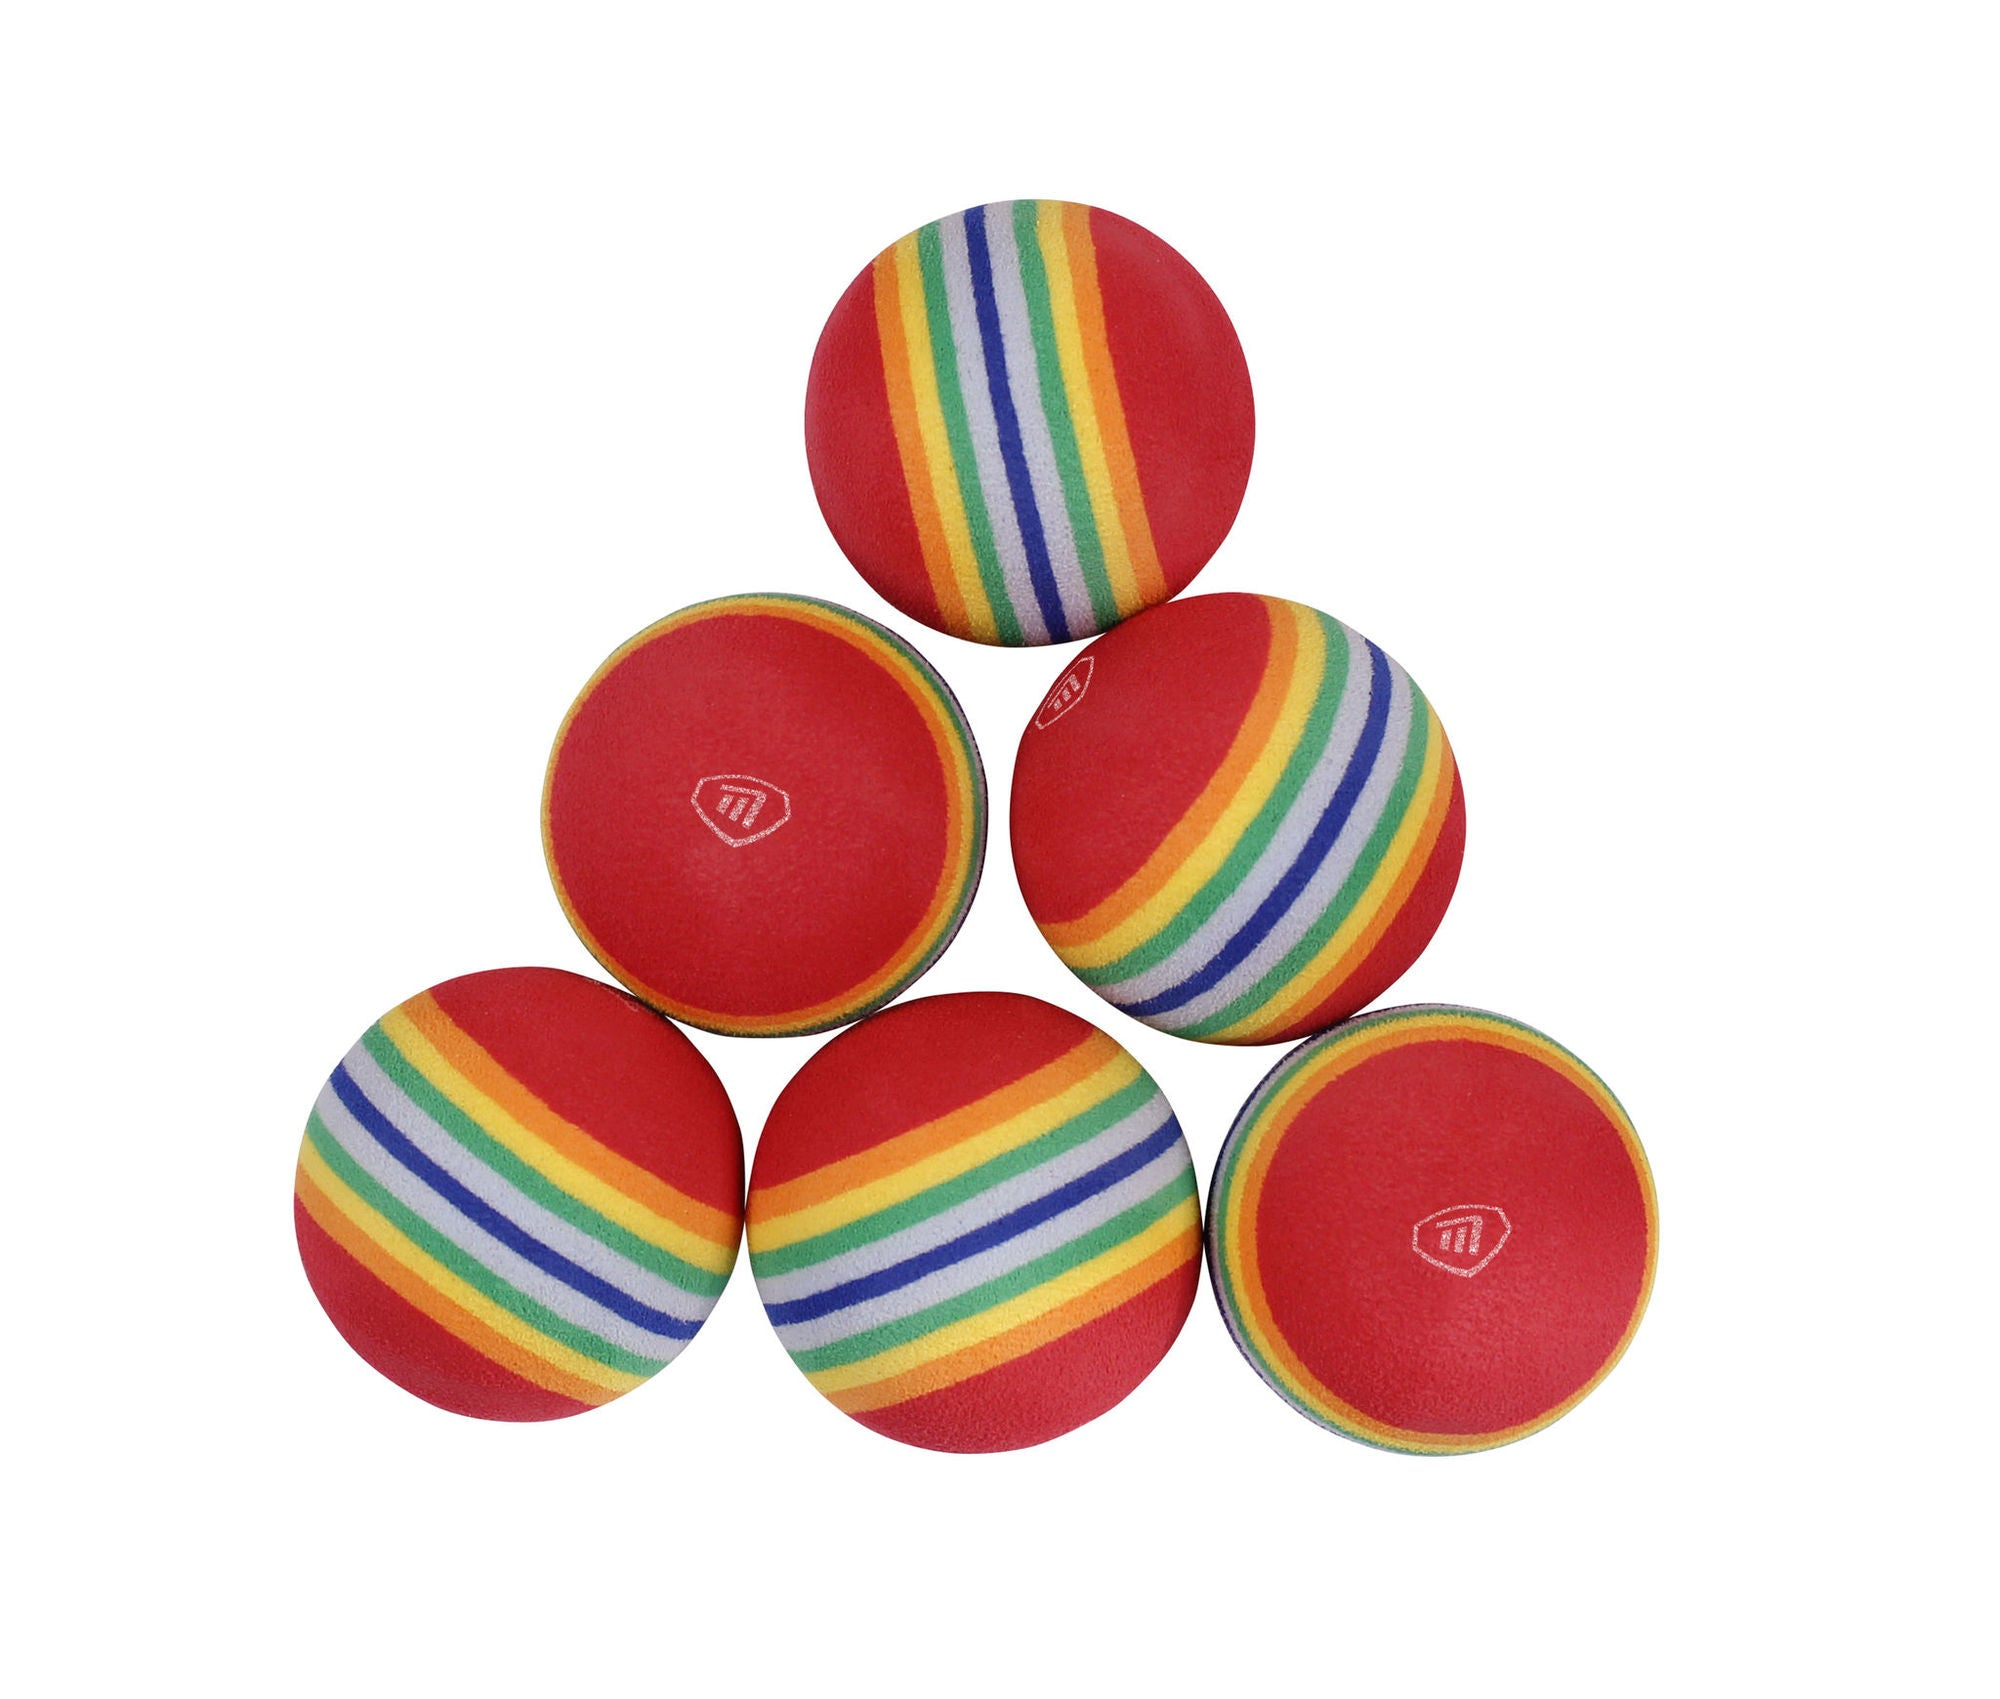 Foam Practice Balls pack of 6 - Putterfingers.com